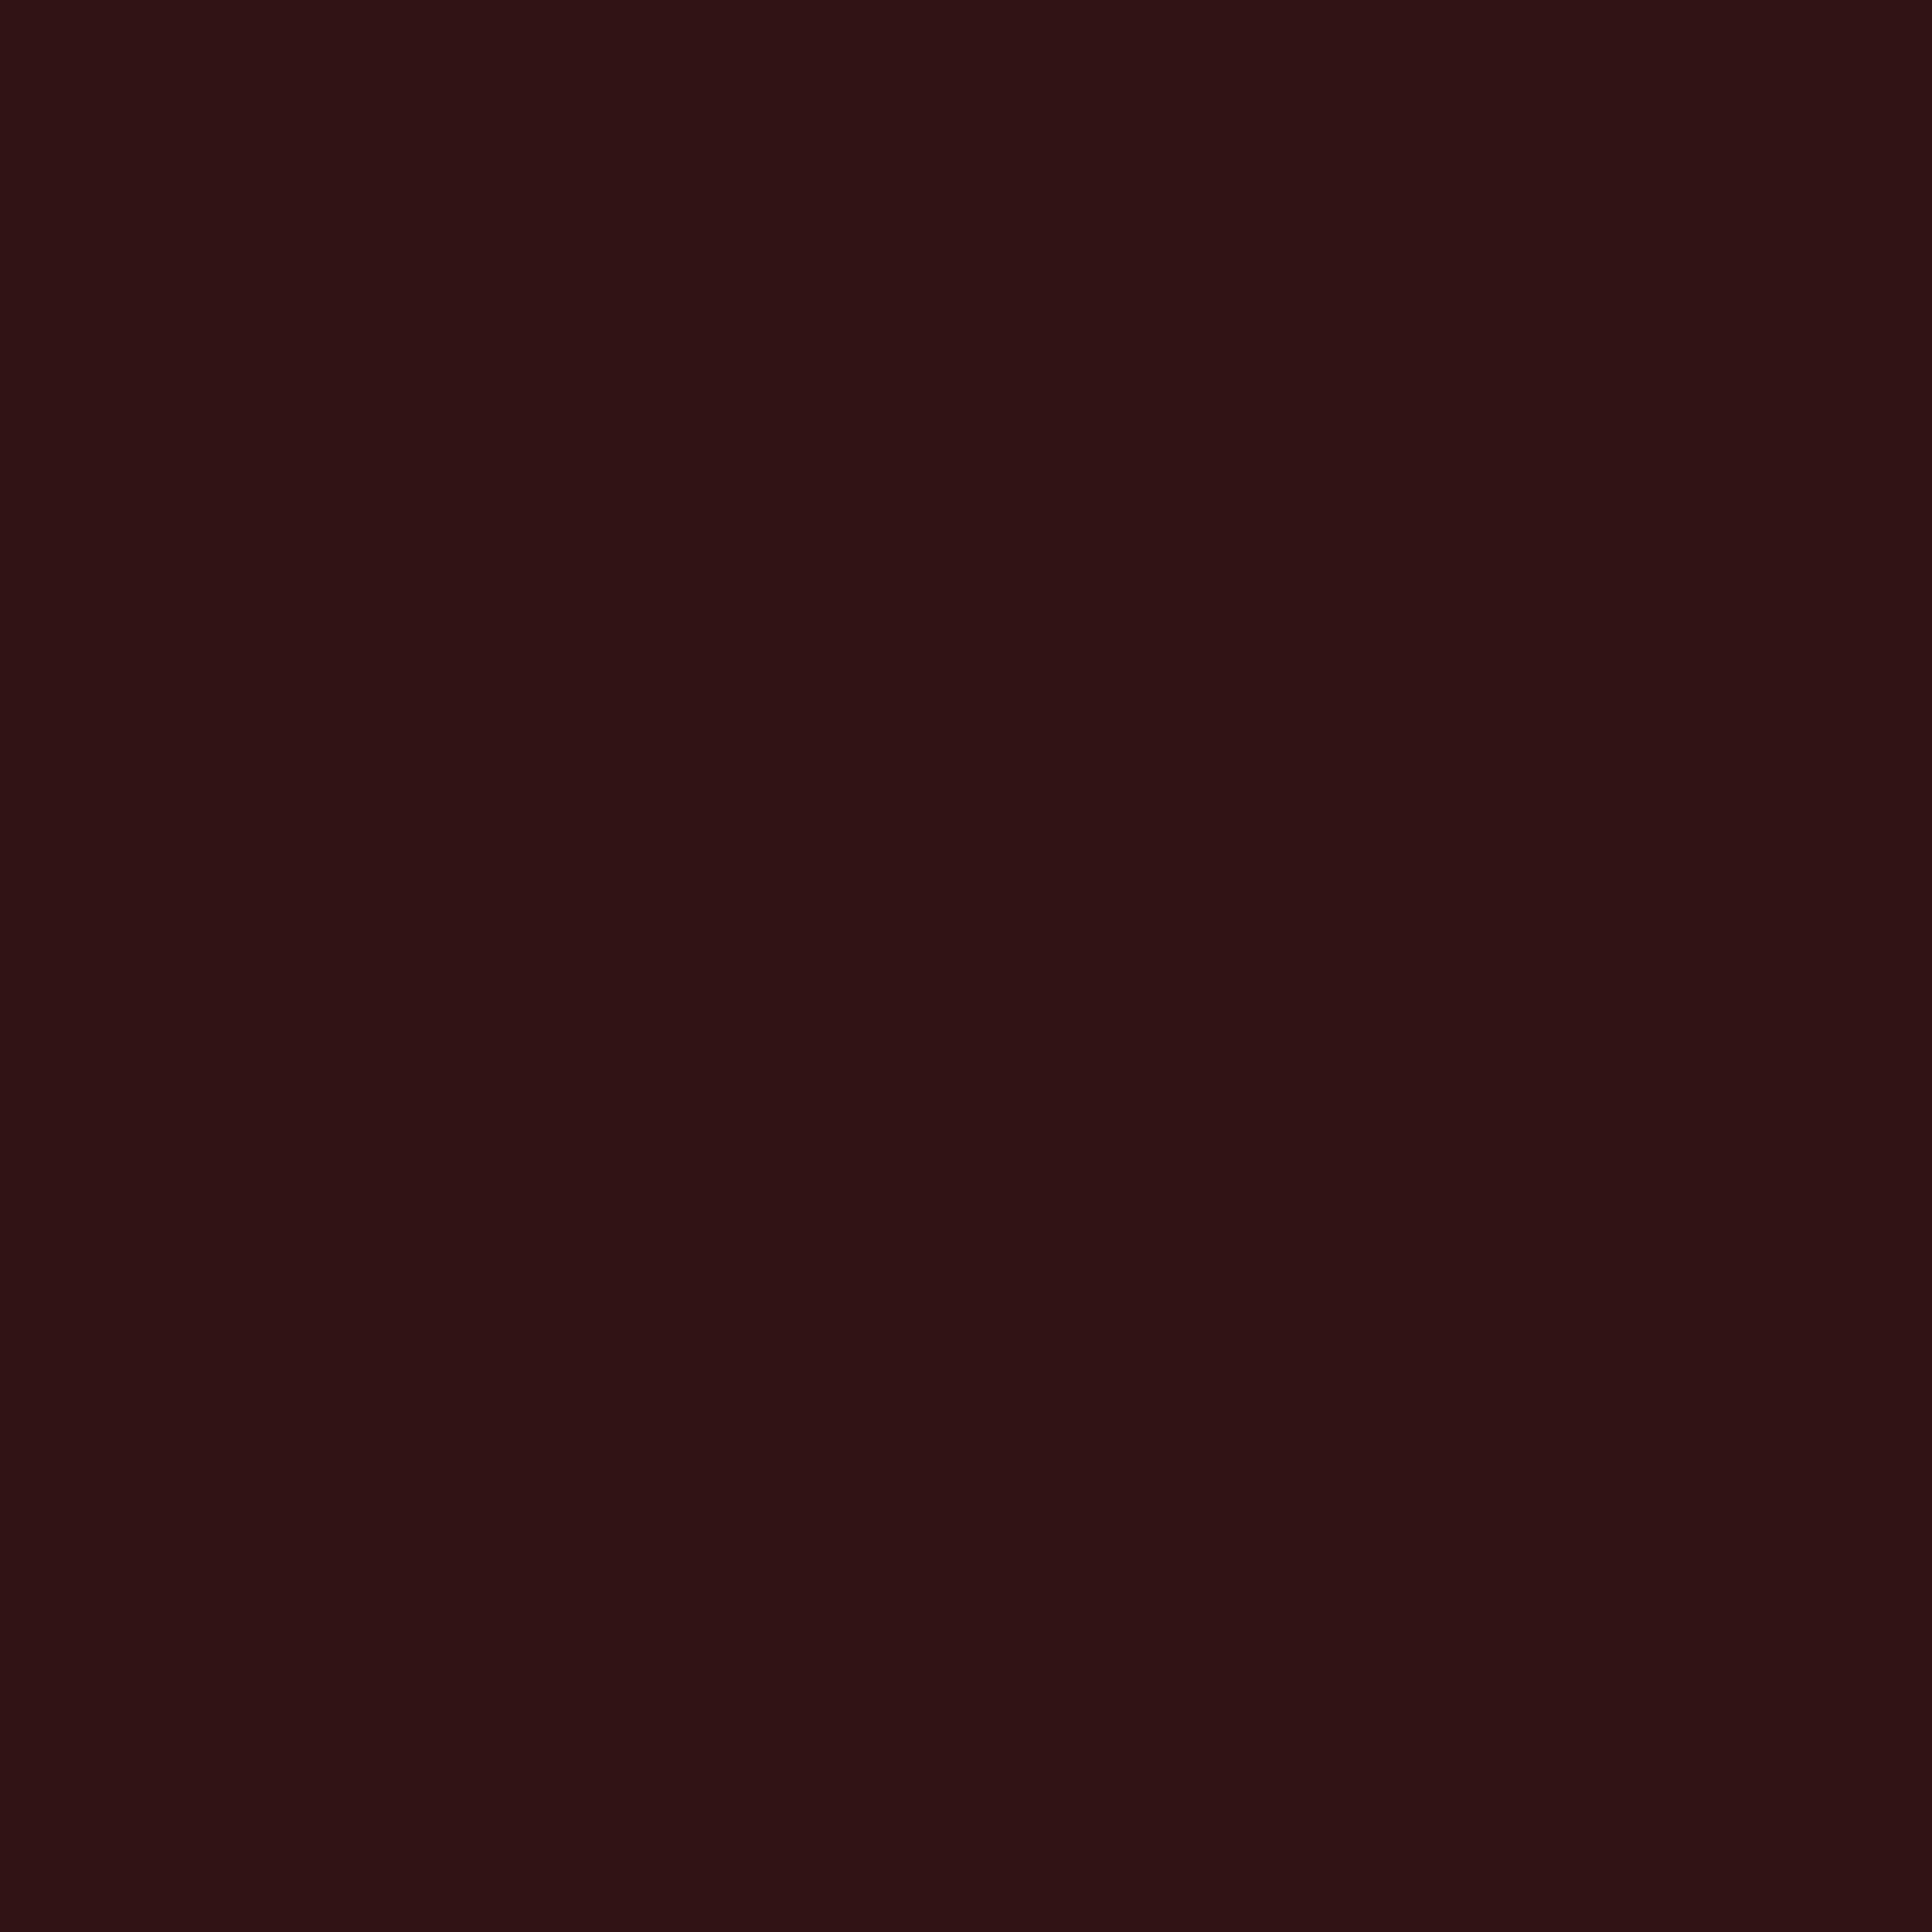 2732x2732 Seal Brown Solid Color Background